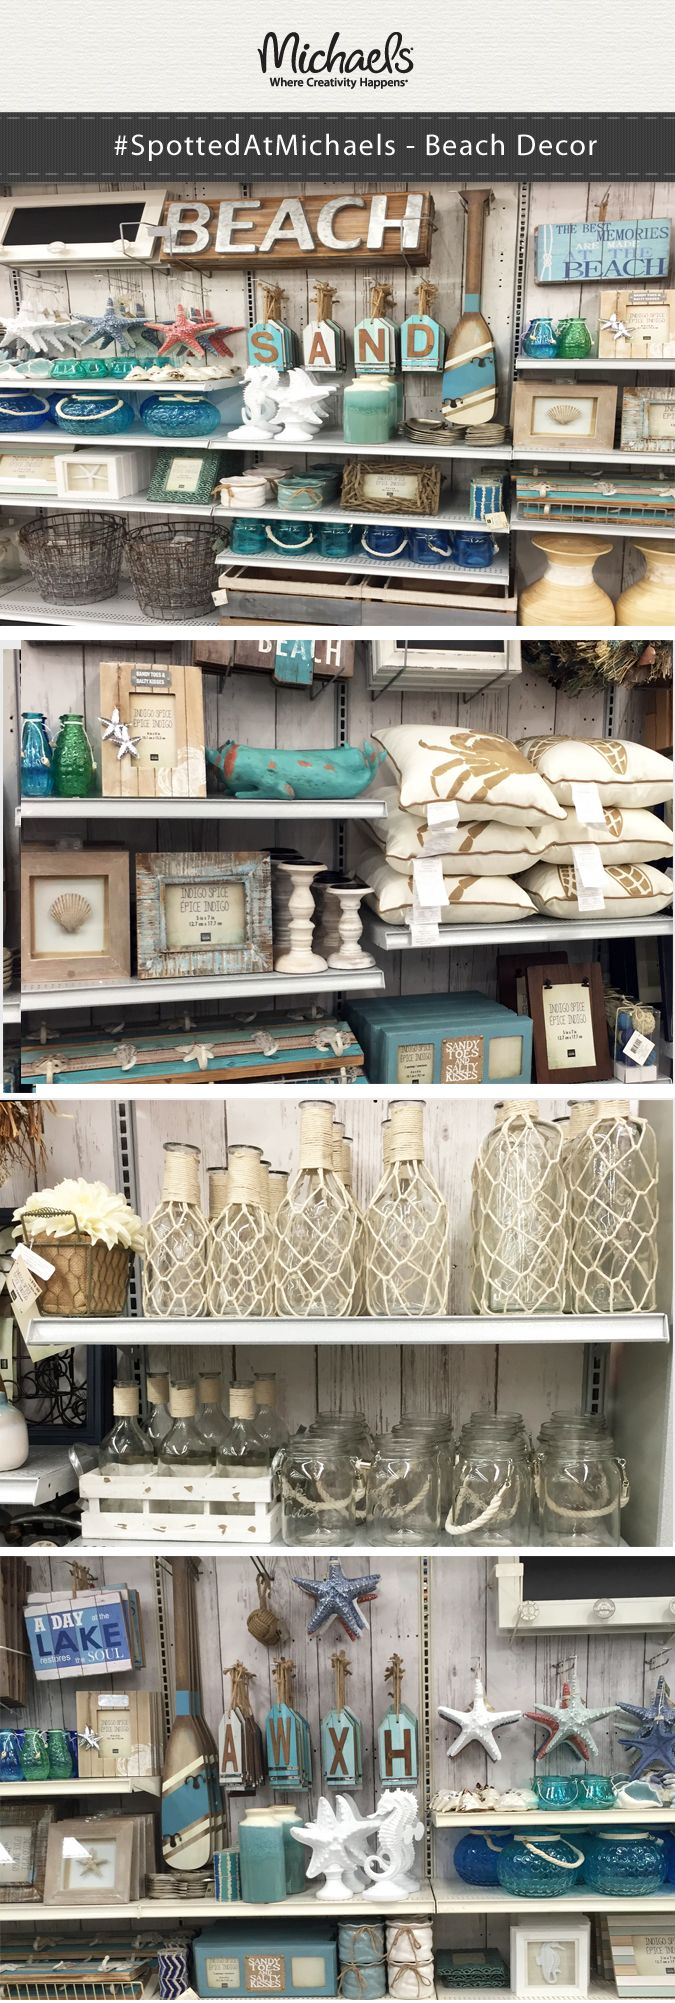 SpottedAtMichaels It's easy to decorate your home, office or cottage with Beach inspired decor! Your local Michaels store has nautical decor from rope entwined bottles, faux starfish and seahorses, weathered signs and frames to pillows and more.